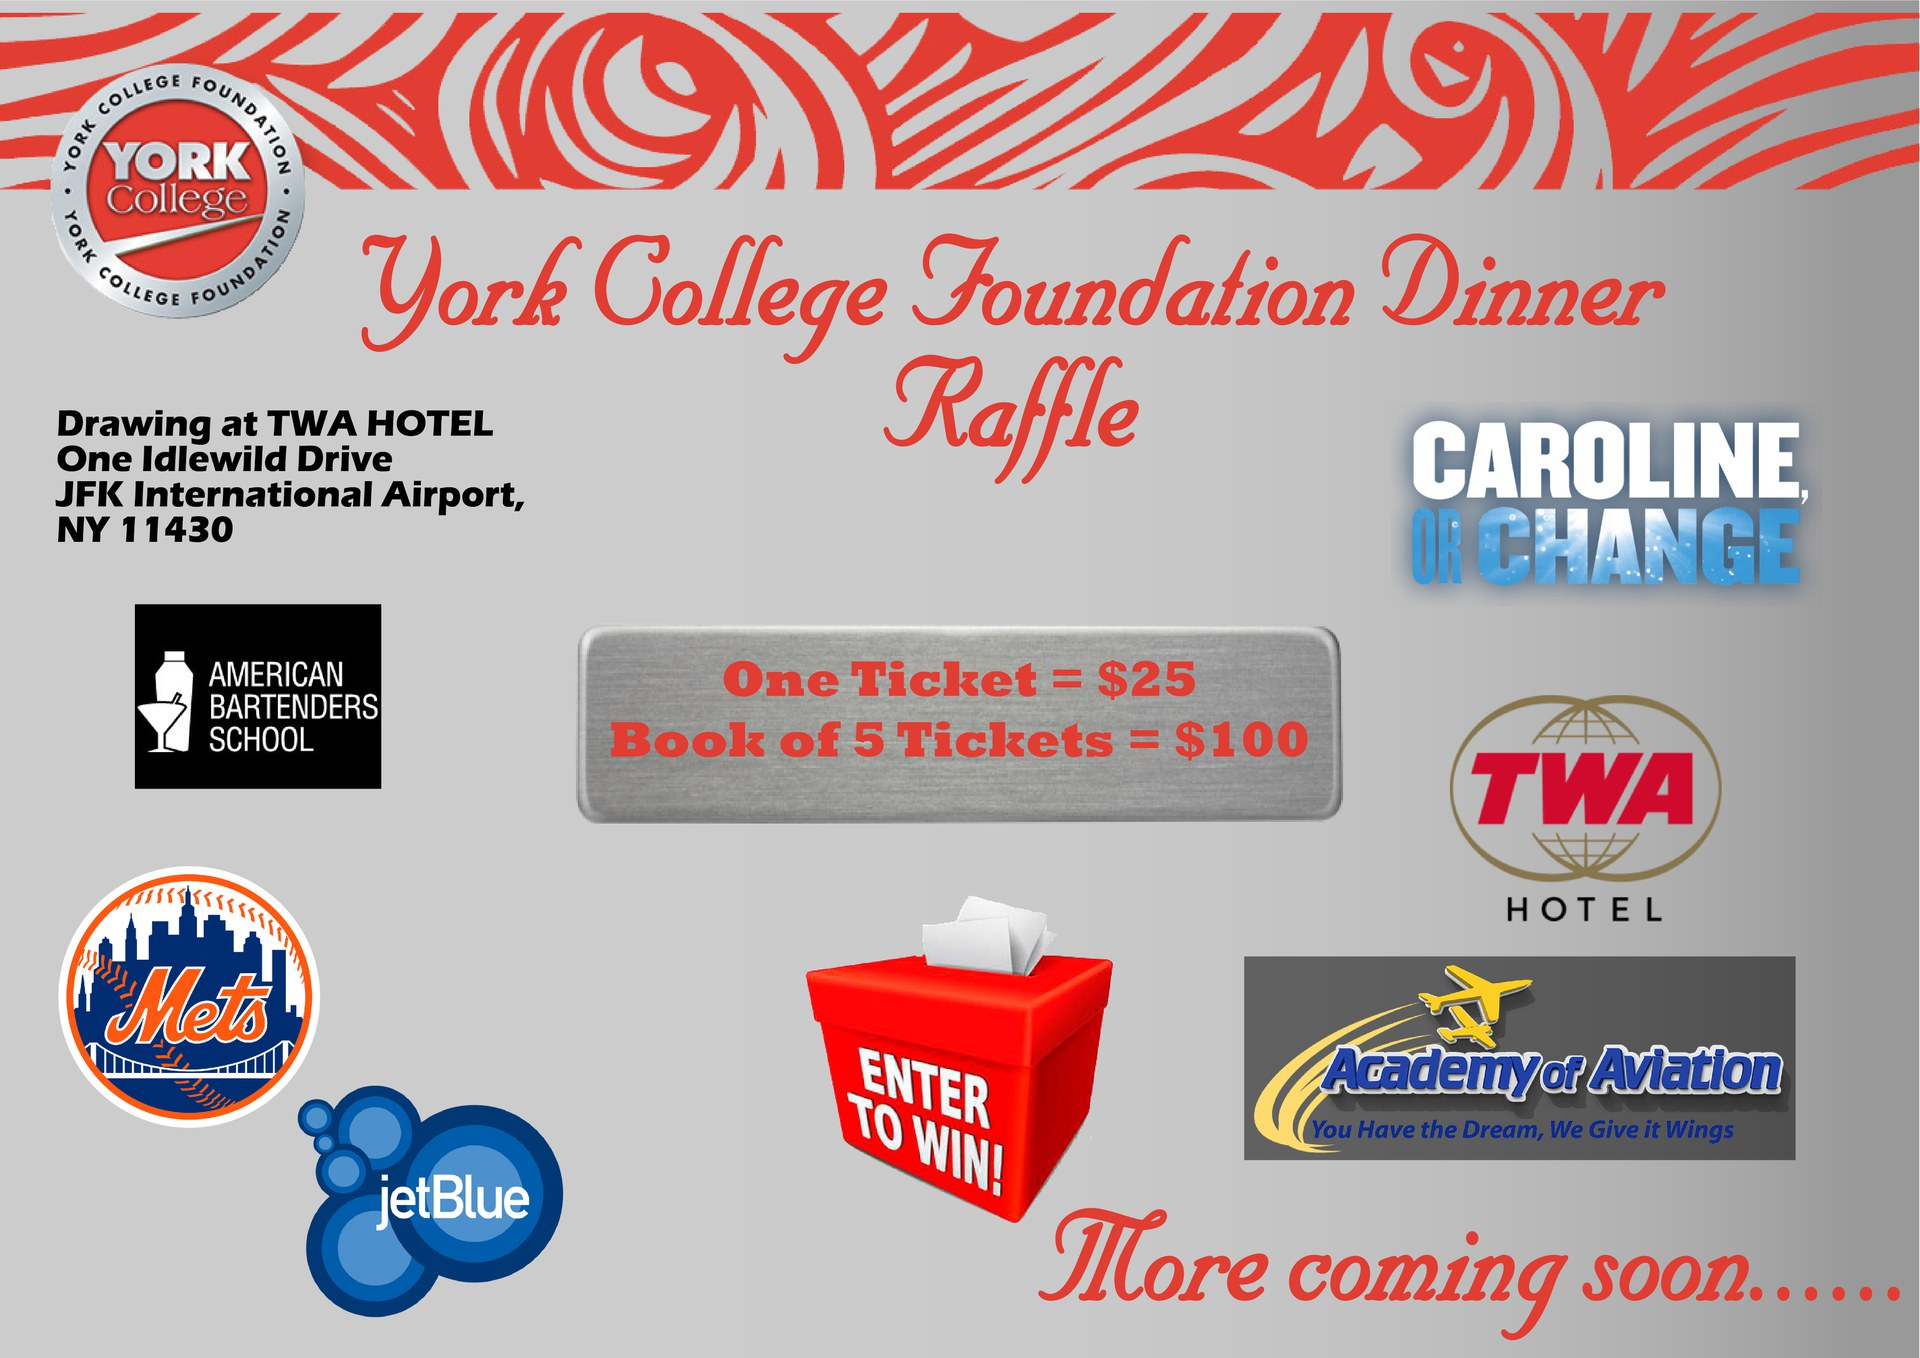 York College Foundation Dinner